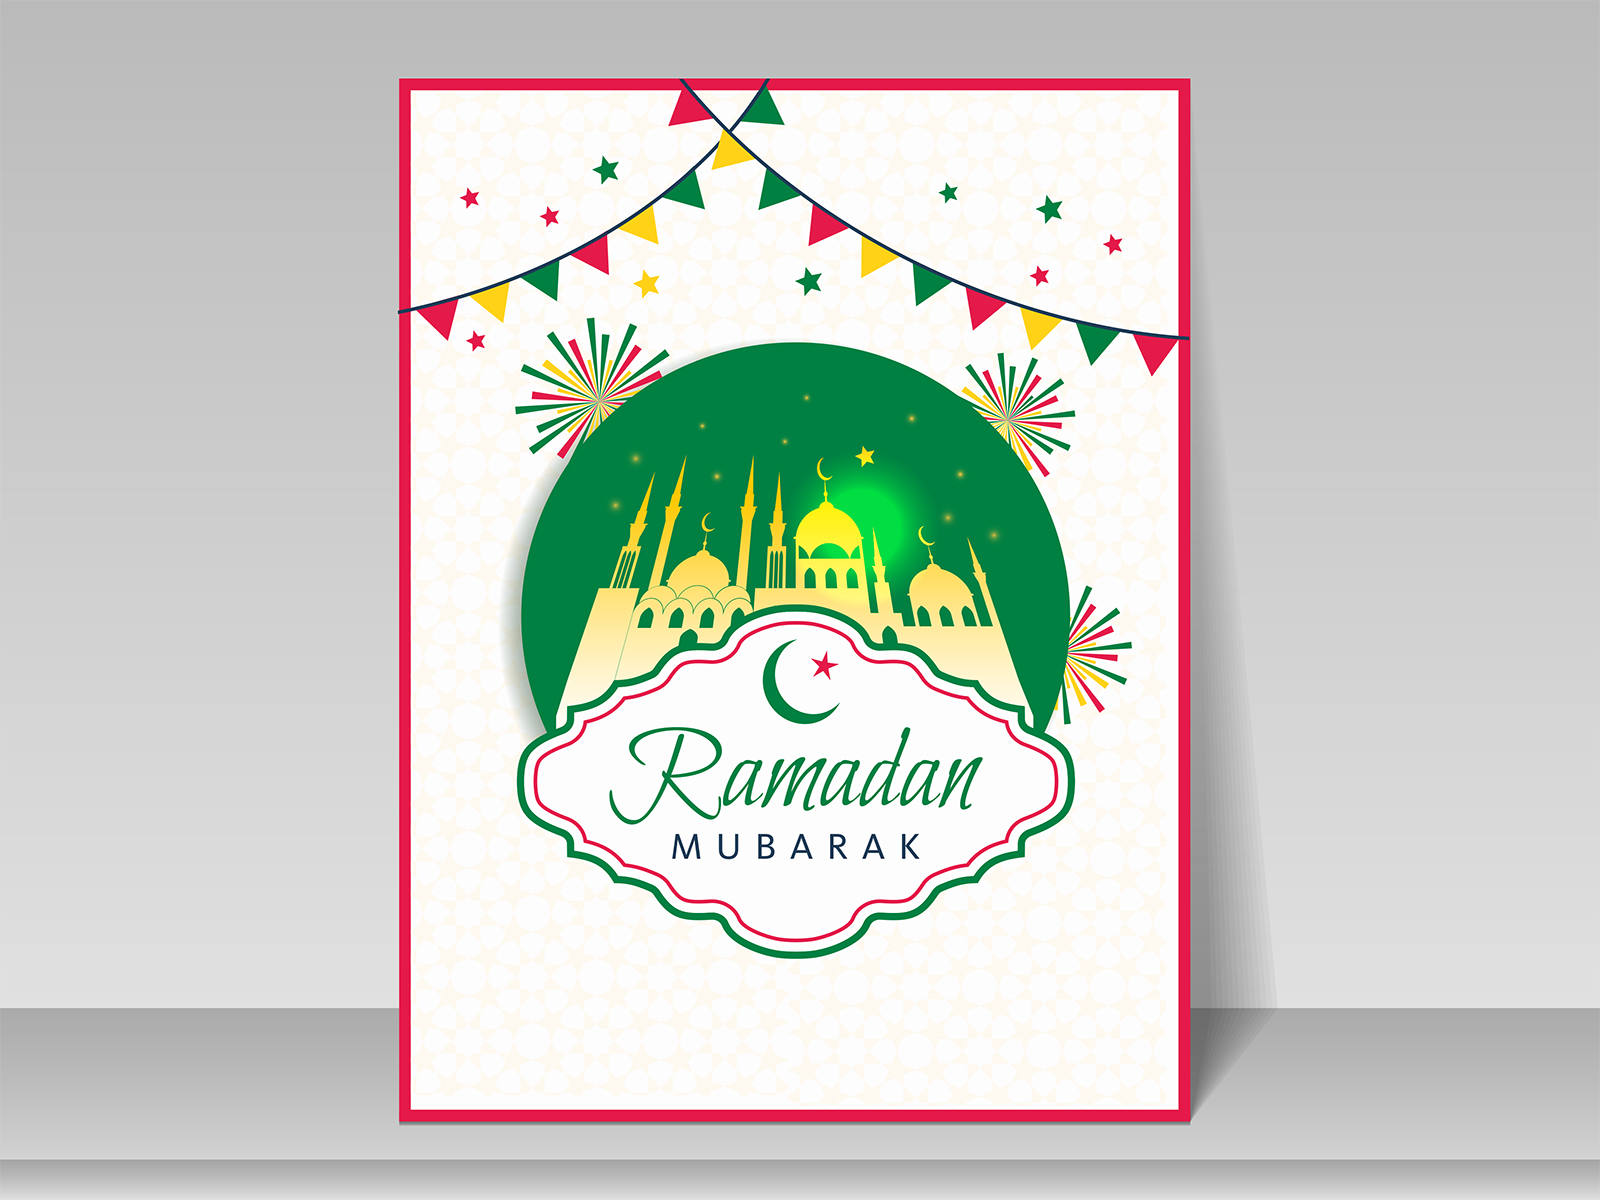 Ramadan Greeting Card Backgrounds